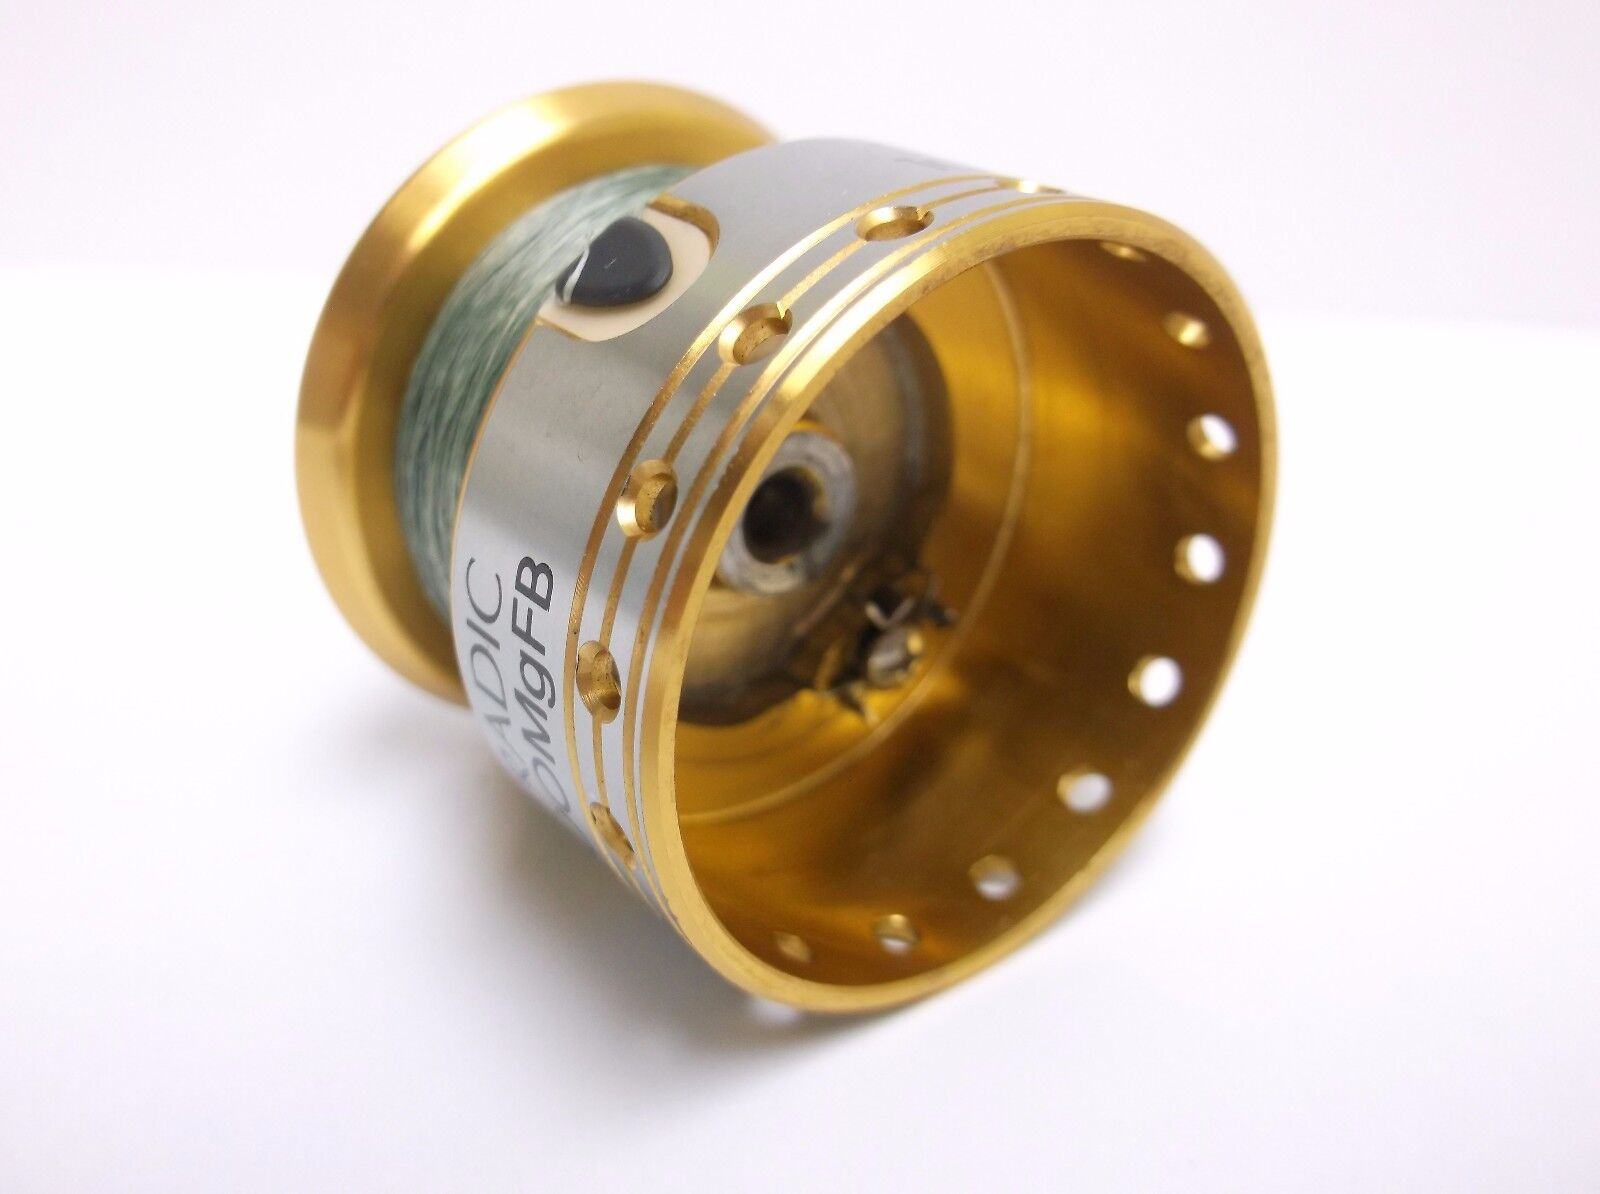 USED SHIMANO SPINNING MgFB REEL PART - Stradic 1000 MgFB SPINNING - Spool Assembly  D 9f58e8